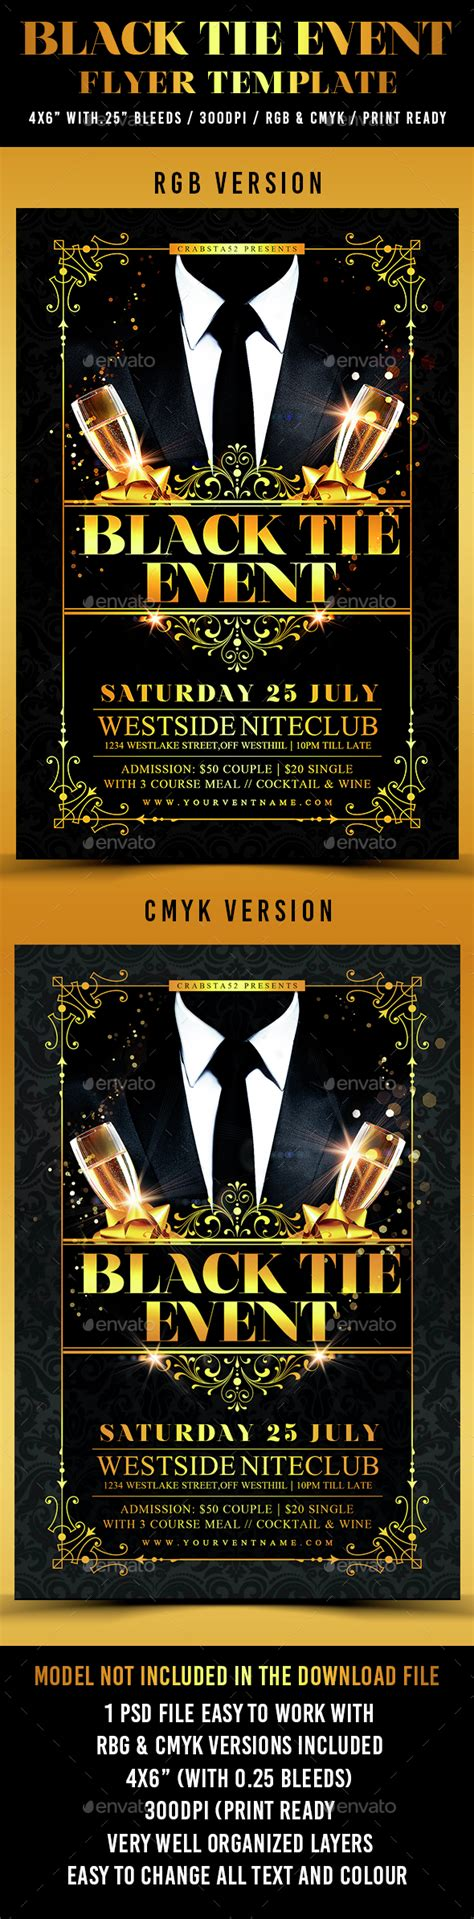 best flyer design graphicriver black tie event flyer template by crabsta52 graphicriver